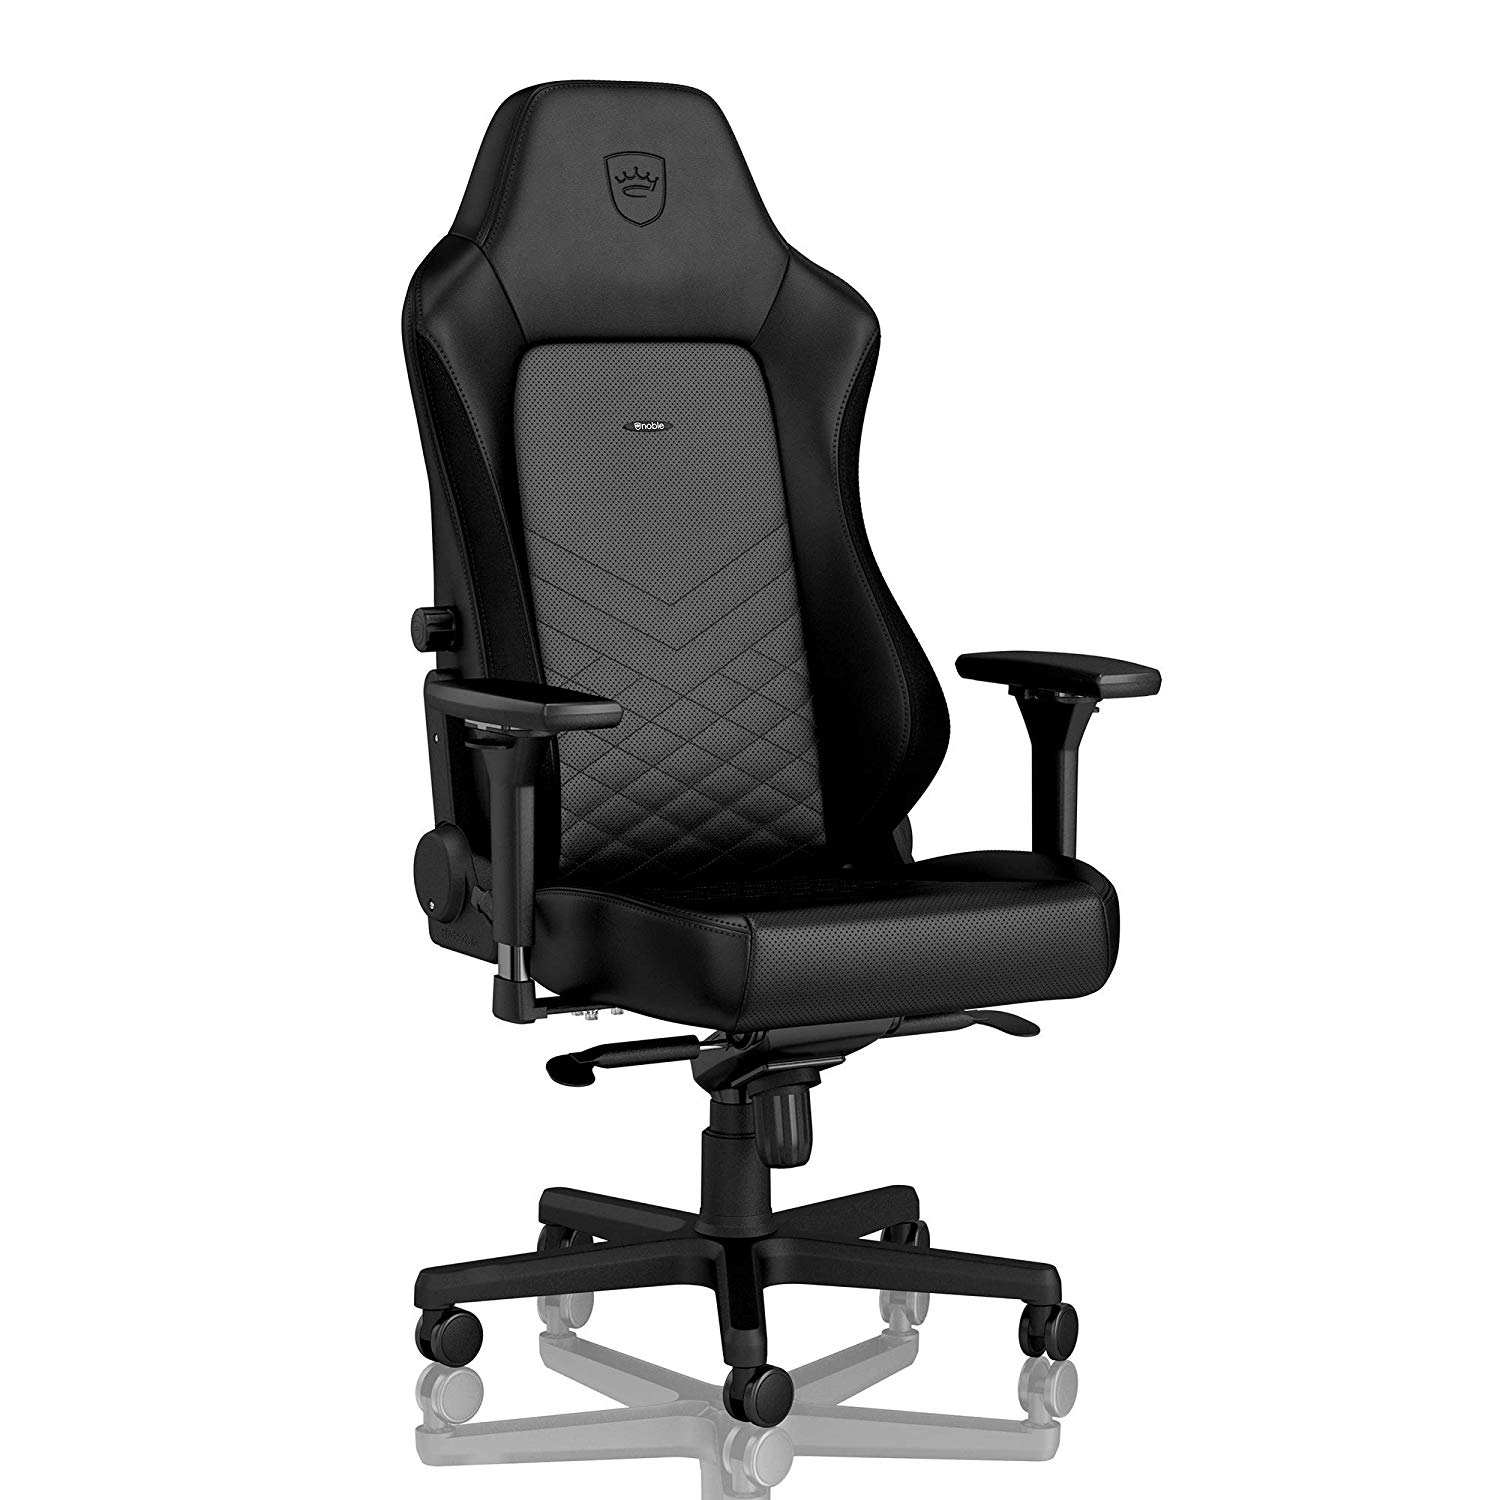 noblechairs Hero Gaming Chair - Office Chair - PU Faux Leather - Lumbar Support - 4D Armrests - Reclinable to 135° - 330 lbs - 2 Pillows - Black